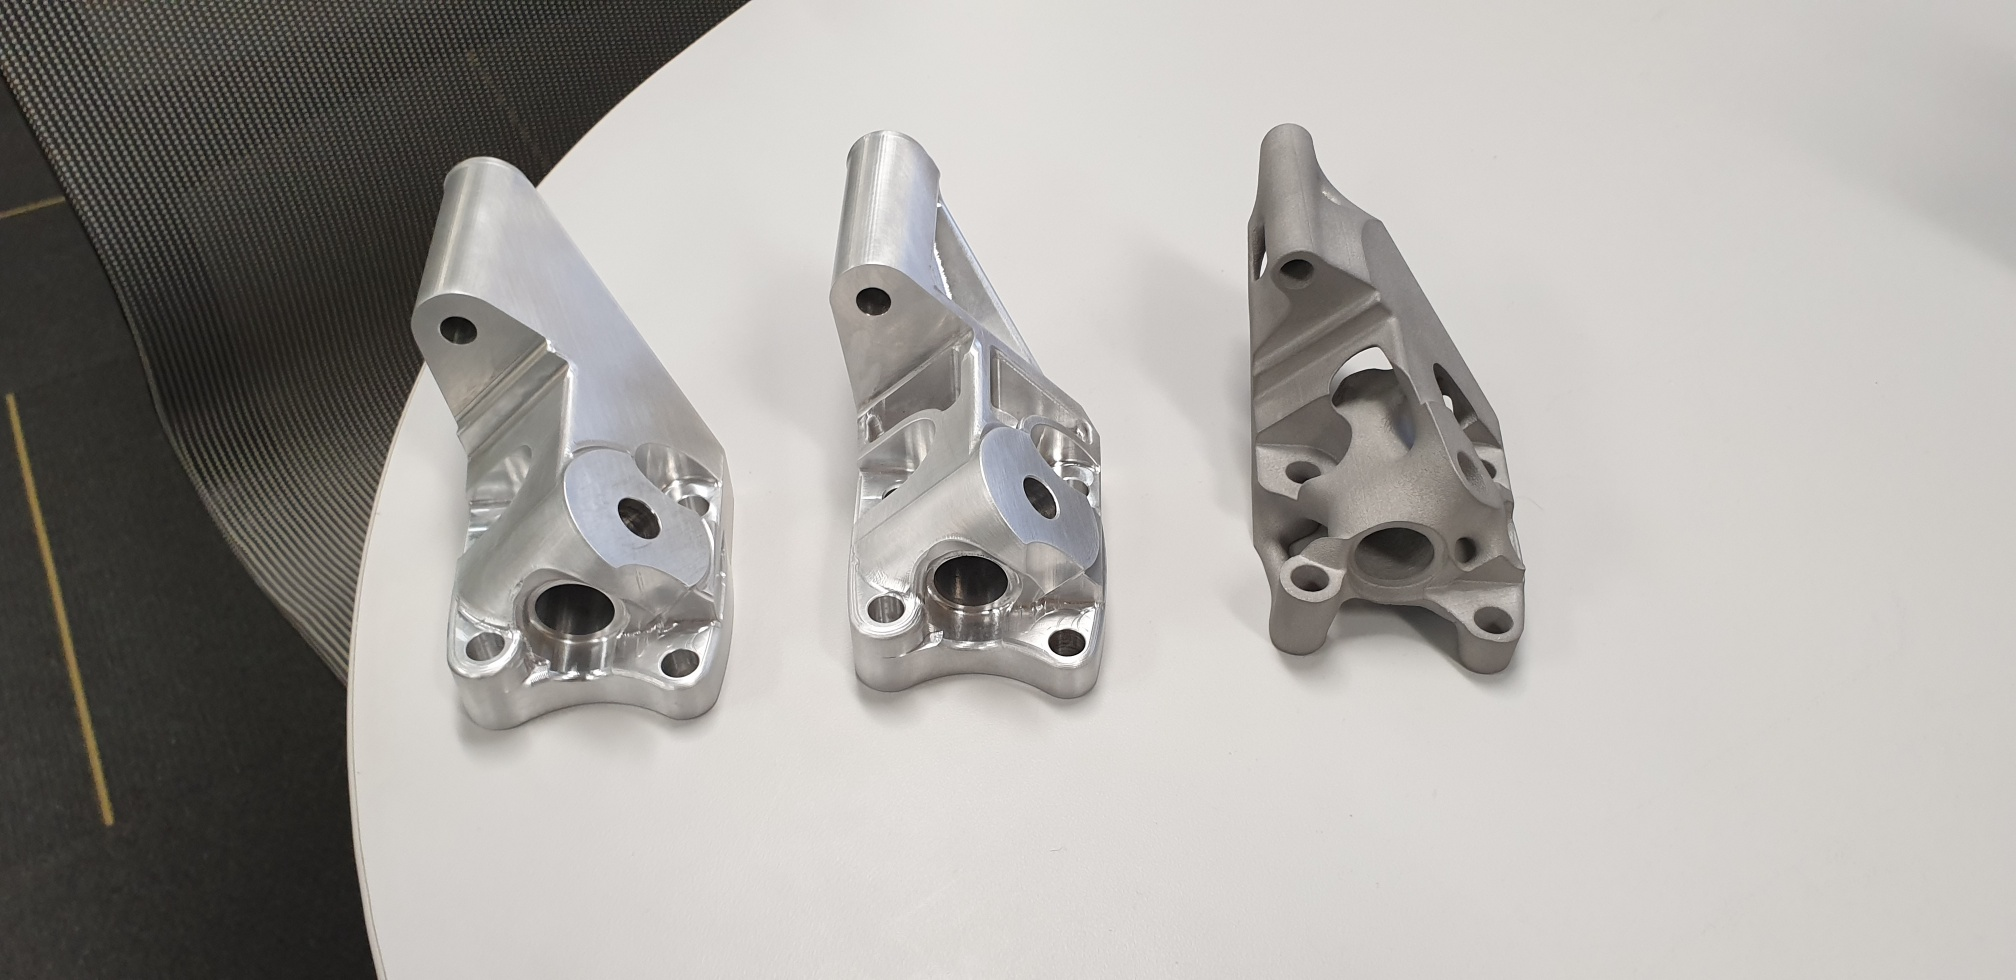 3D printed & Machined Component design iterations & comparisons